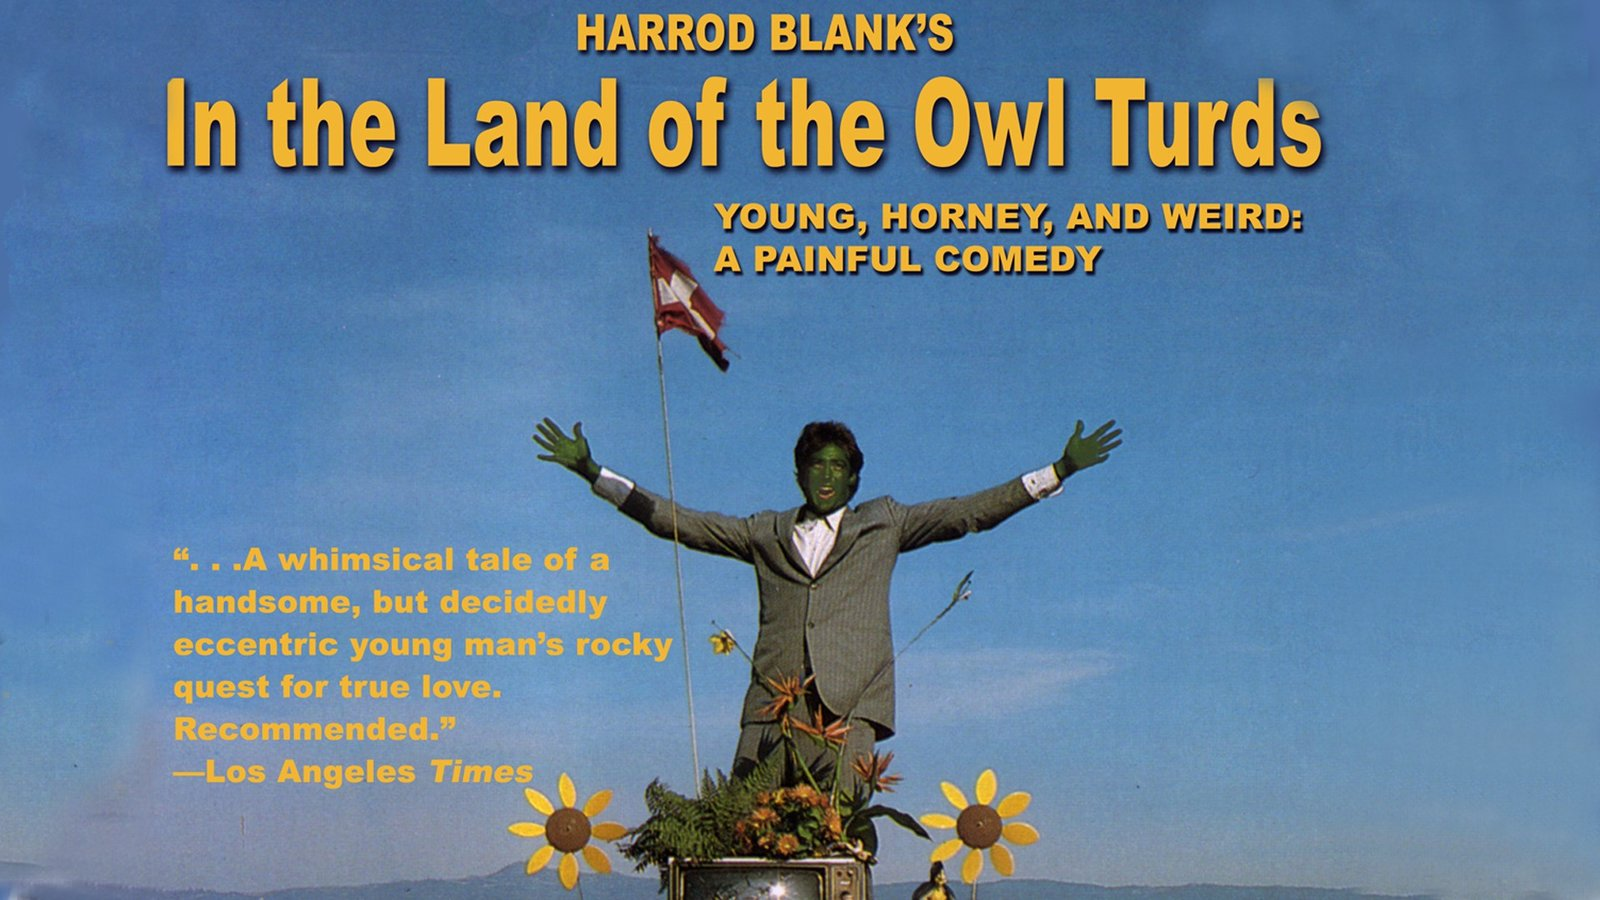 In the Land of the Owl Turds